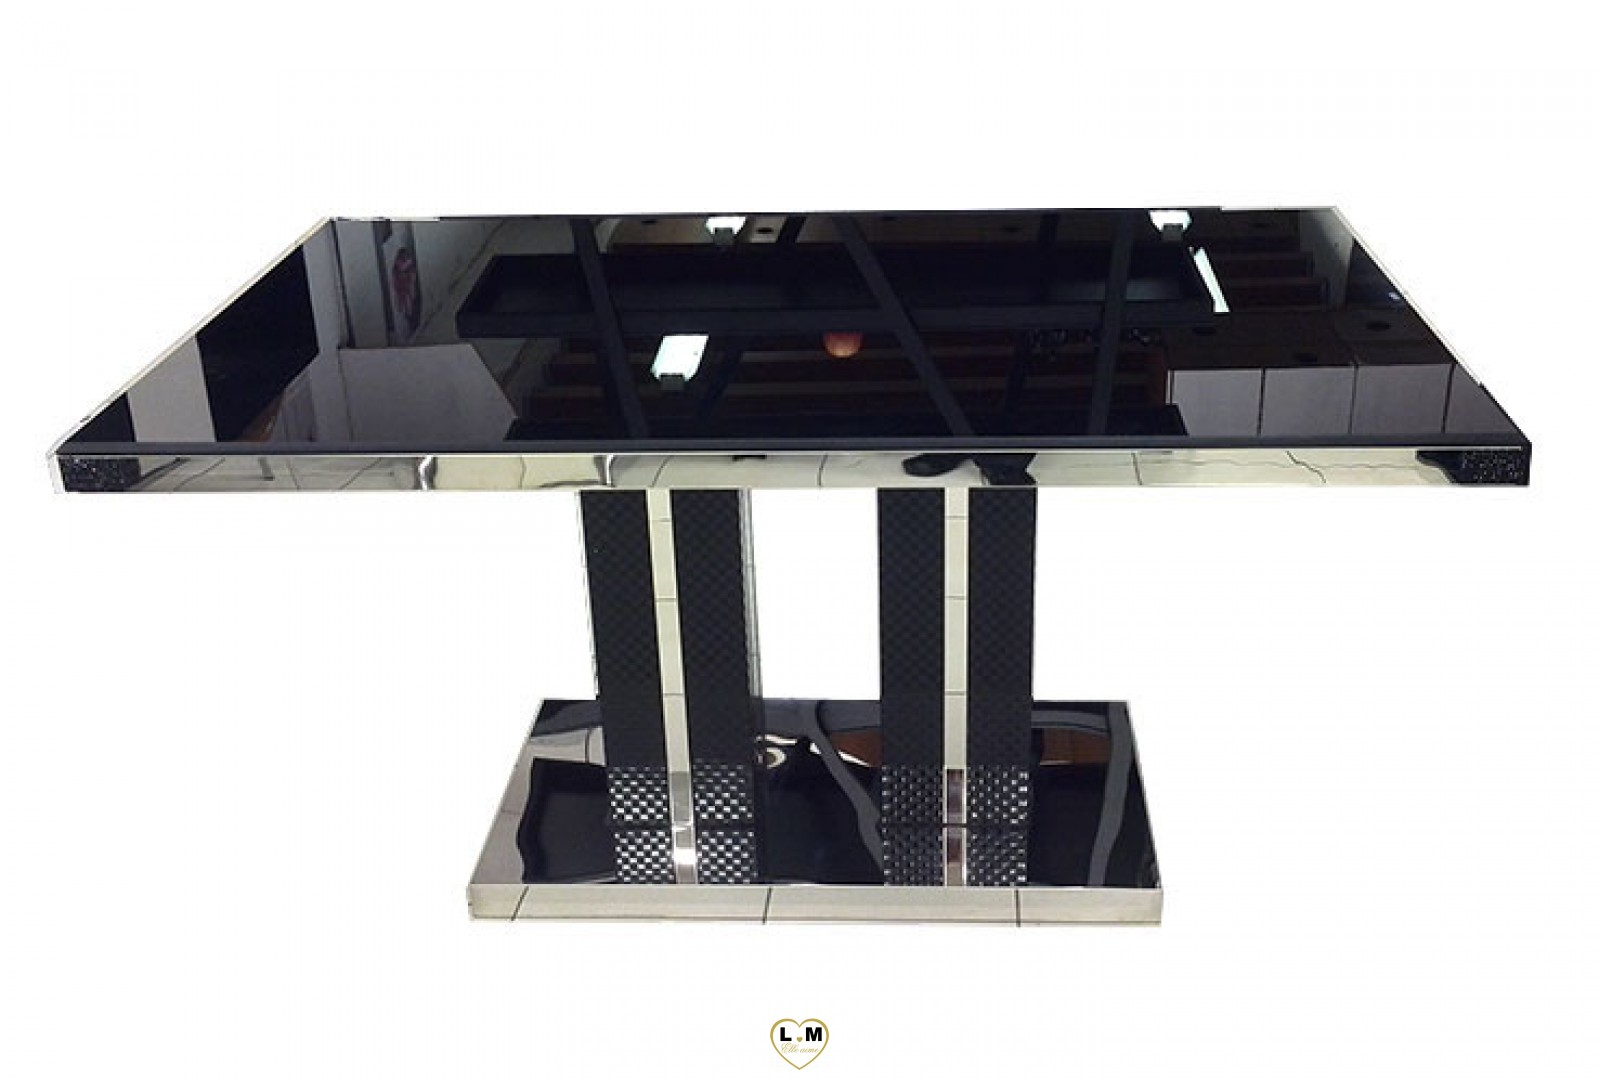 t8010 table salle a manger noire plateau verre noir. Black Bedroom Furniture Sets. Home Design Ideas